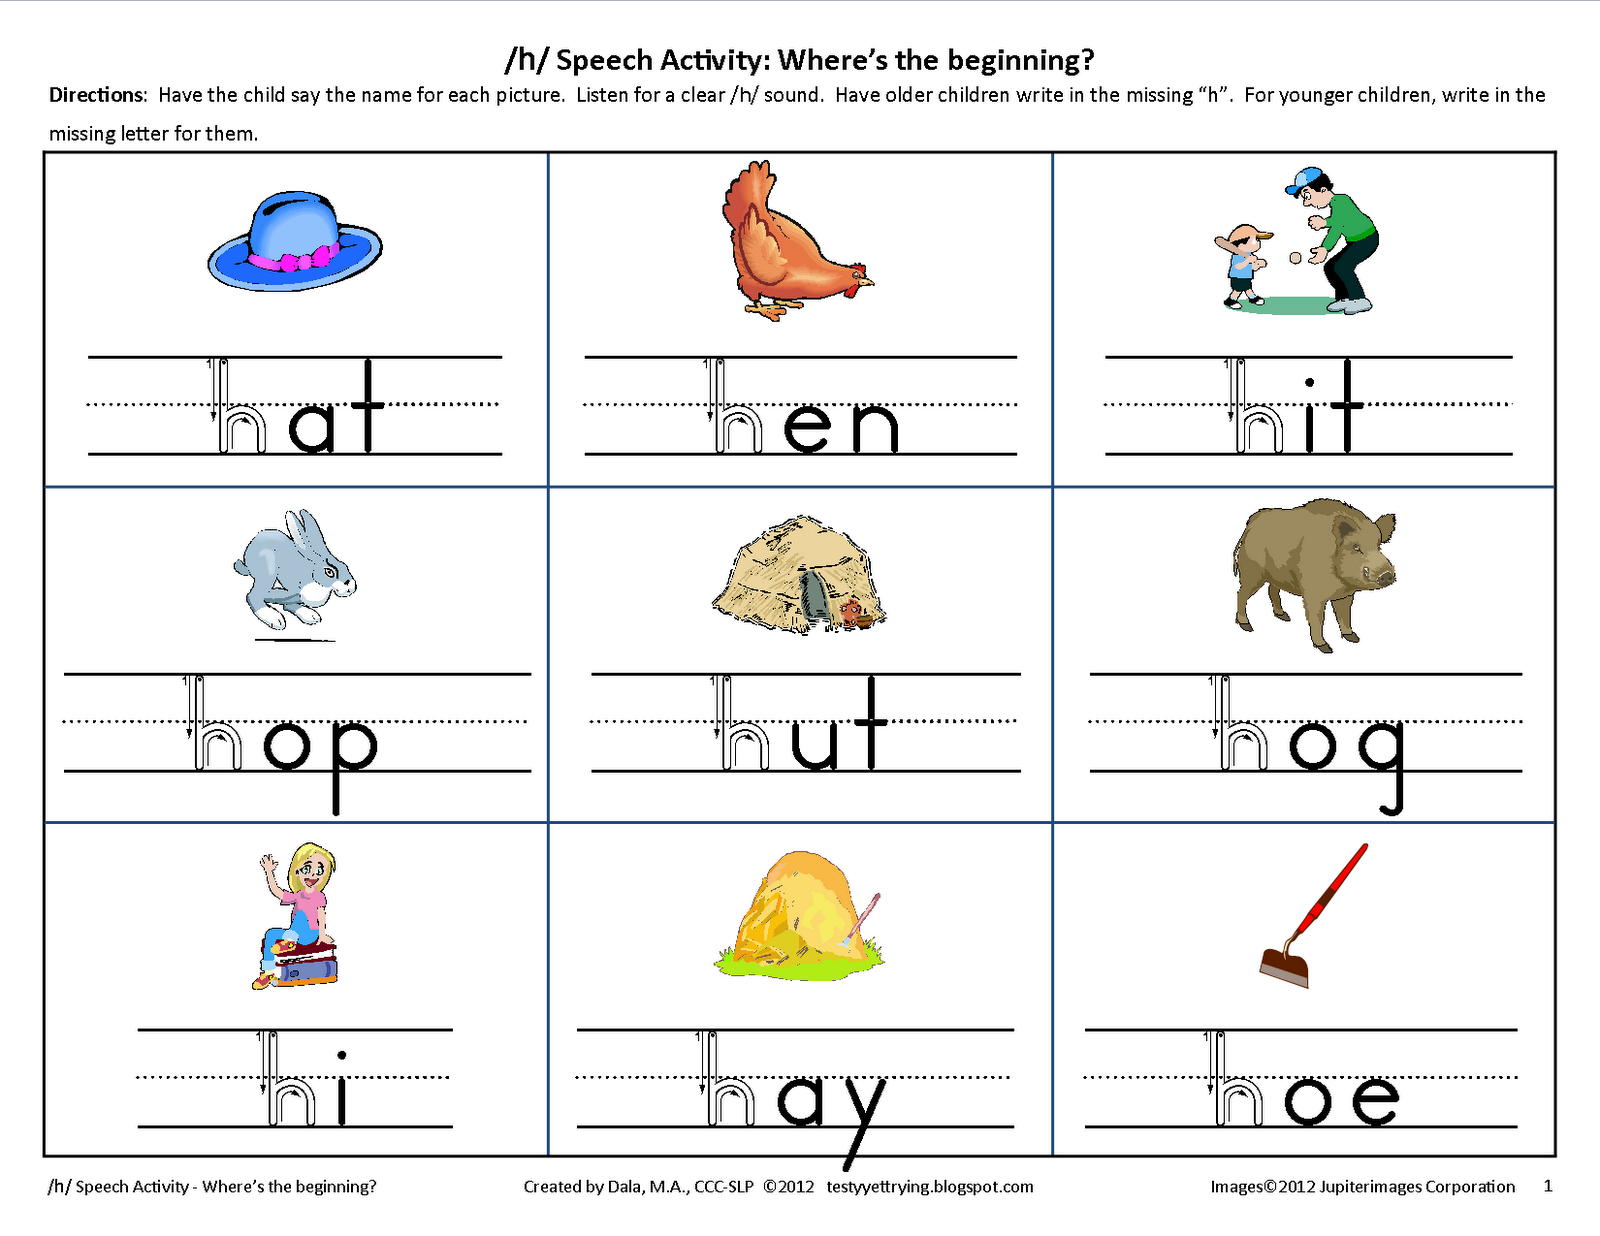 Proatmealus  Pleasant Testy Yet Trying Initial H Speech Worksheet With Heavenly Make Classroom Teachers Happy Reinforce Phonics And Handwriting And Practice Speech All At The Same Time With Amusing Kindergarten Picture Addition Worksheets Also Reading Comprehension Worksheet For Kindergarten In Addition Gcse Ict Worksheets And Adverbs Worksheets For Grade  As Well As Pictograph Worksheets Grade  Additionally Free Reading Comprehension Worksheets For First Grade From Testyyettryingblogspotcom With Proatmealus  Heavenly Testy Yet Trying Initial H Speech Worksheet With Amusing Make Classroom Teachers Happy Reinforce Phonics And Handwriting And Practice Speech All At The Same Time And Pleasant Kindergarten Picture Addition Worksheets Also Reading Comprehension Worksheet For Kindergarten In Addition Gcse Ict Worksheets From Testyyettryingblogspotcom